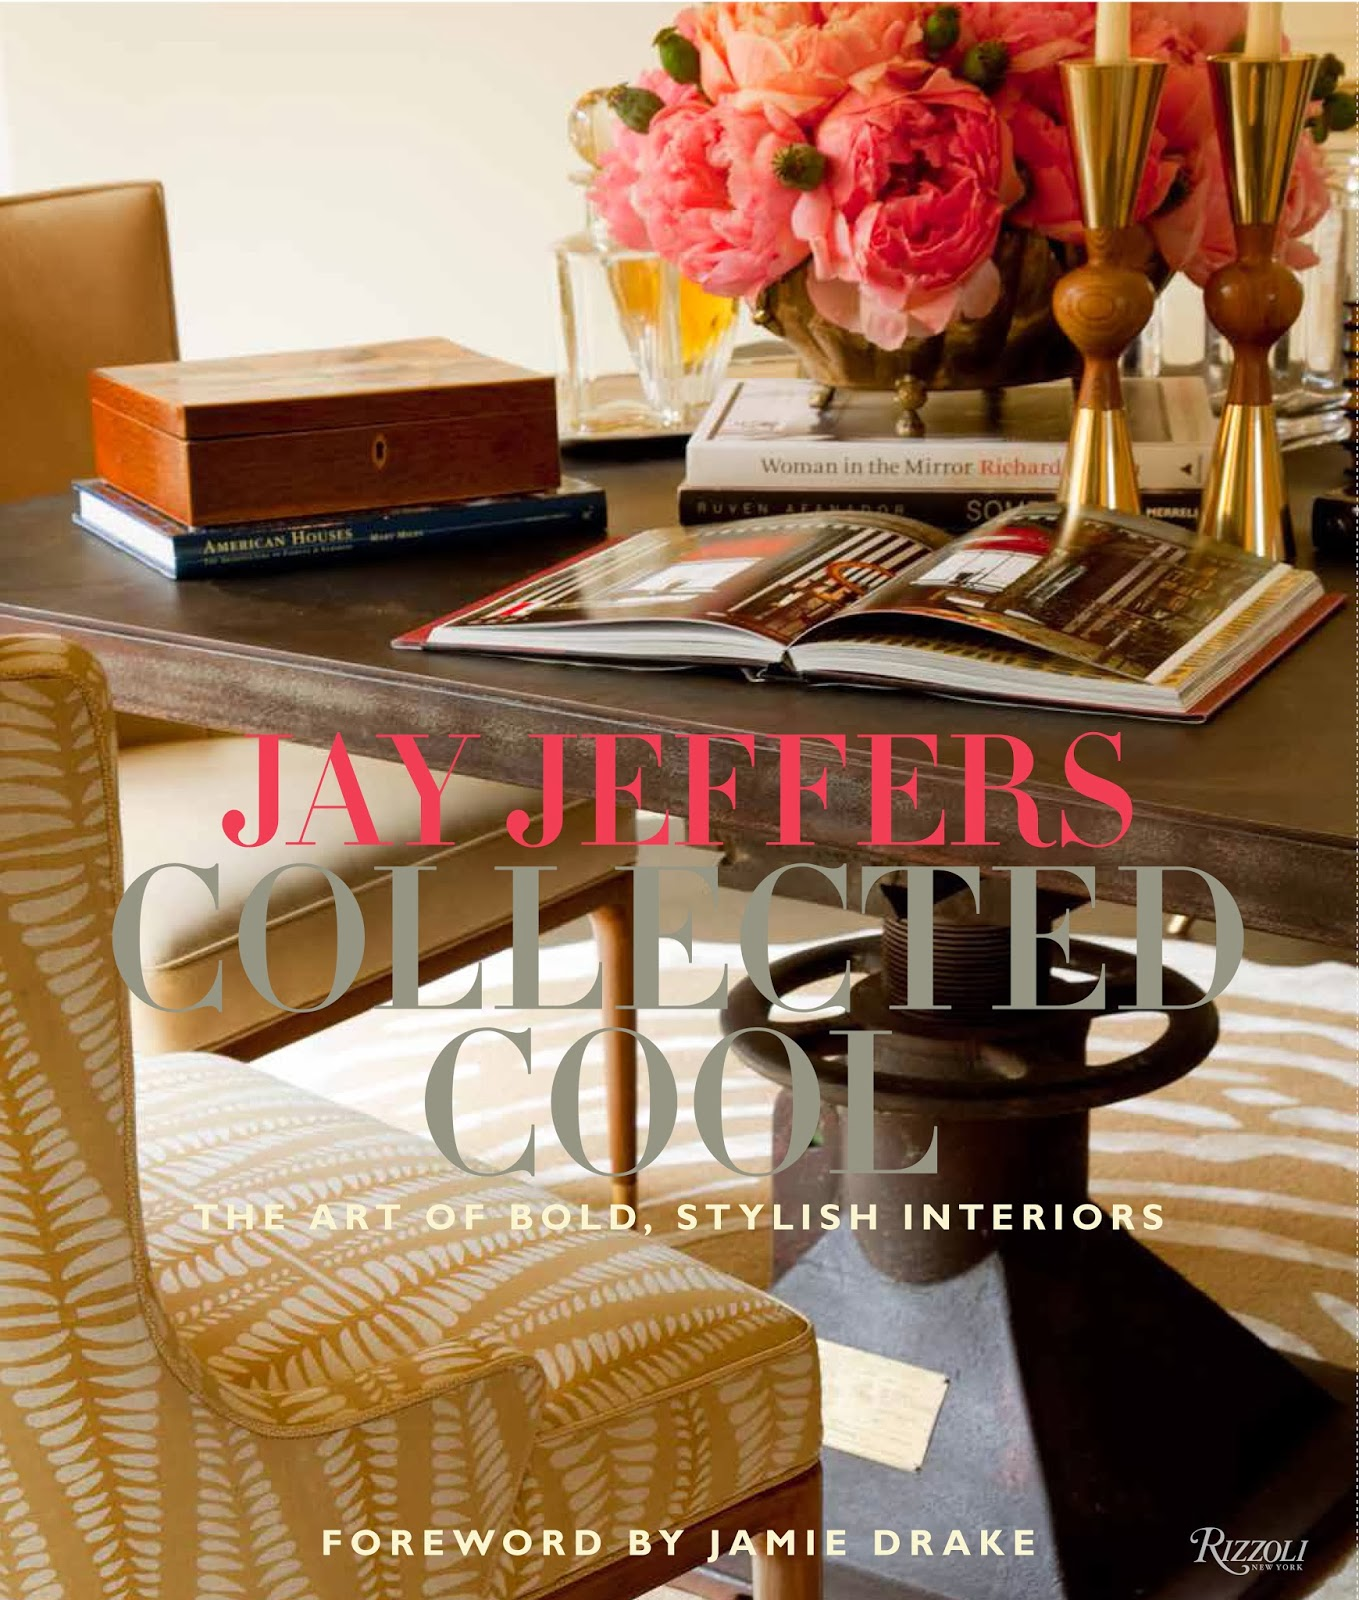 The Arts by Karena Collected Cool by Interior Designer Jay Jeffers